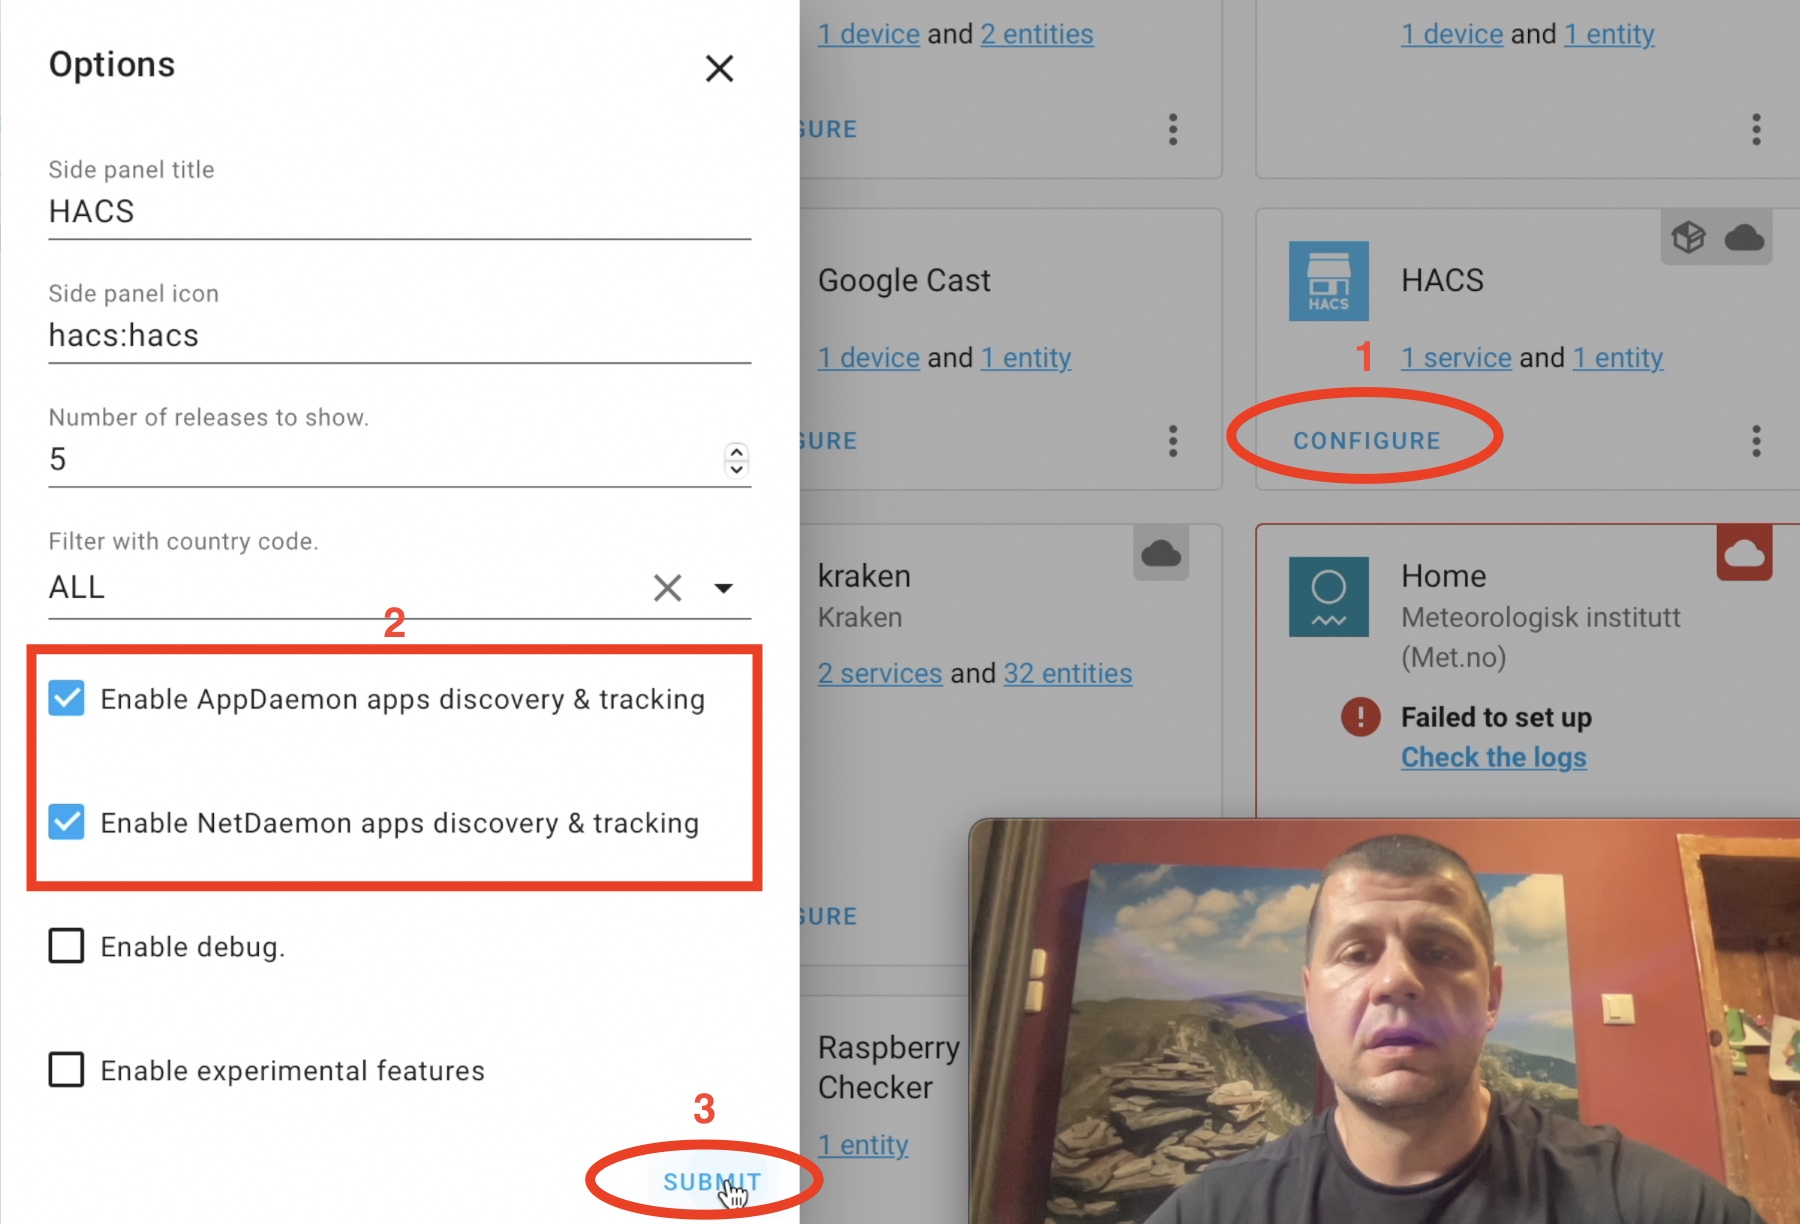 Enable AppDaemon and NetDaemon apps in HACS